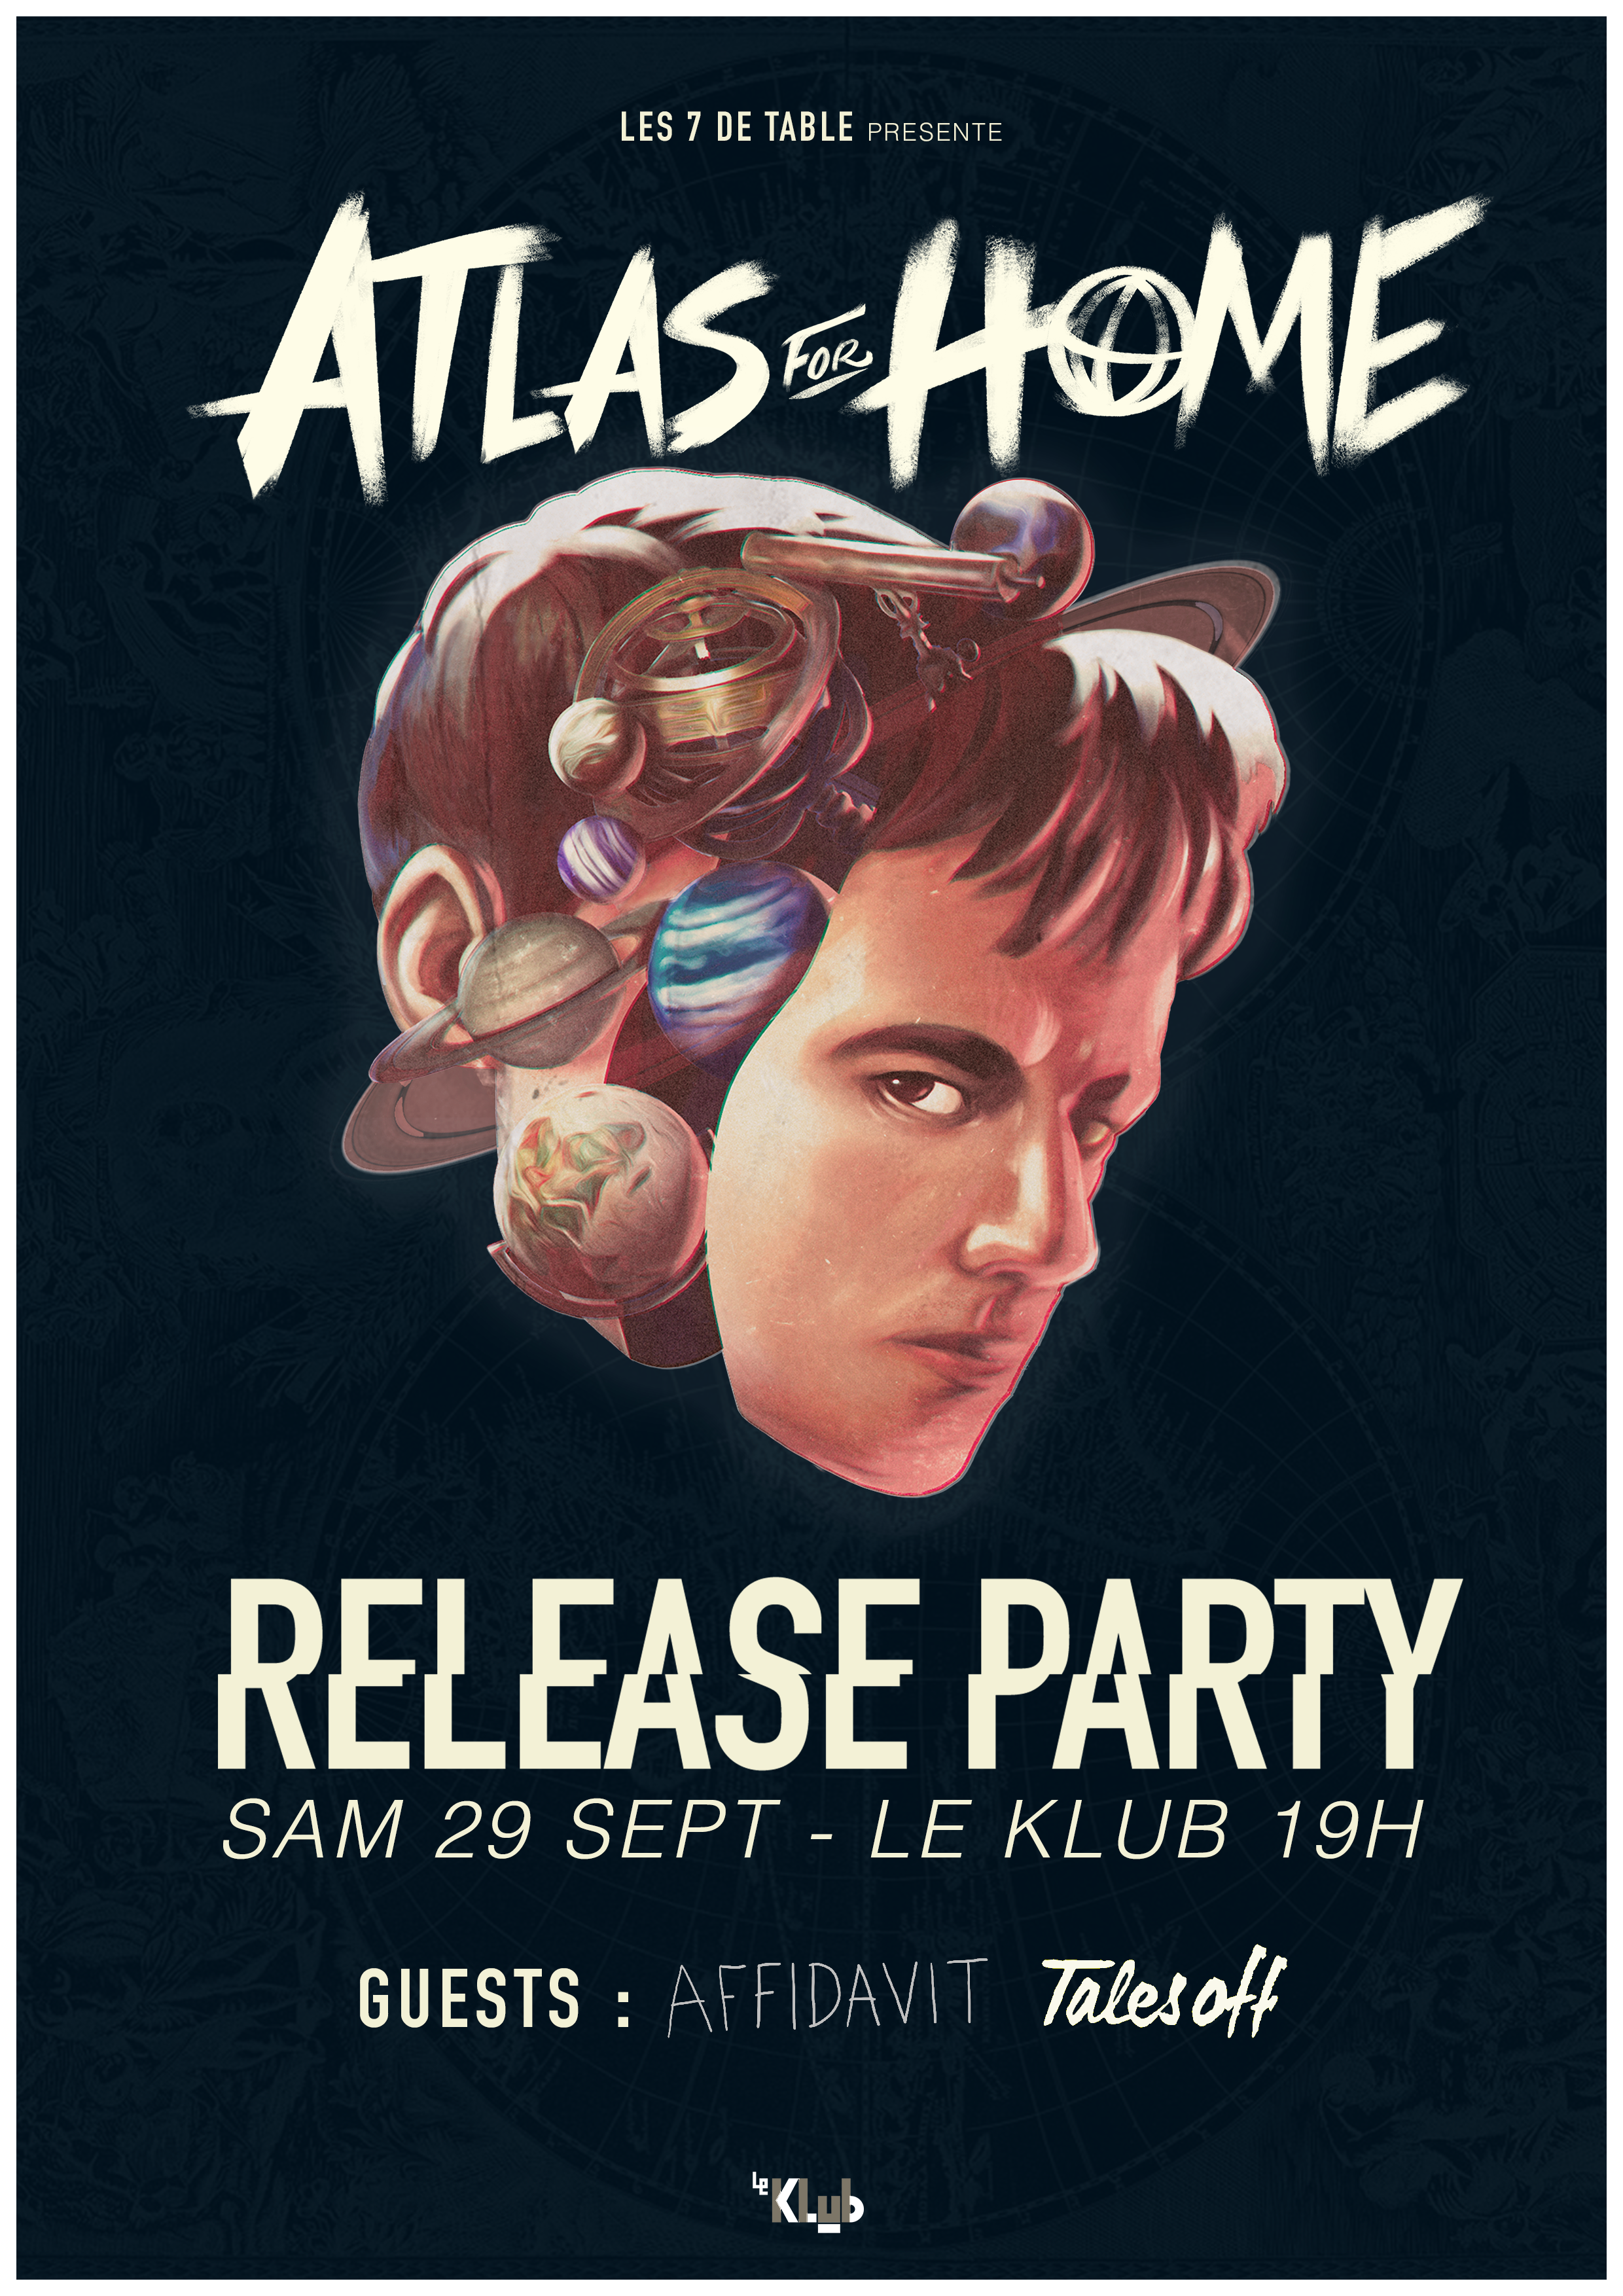 ATLAS FOR HOME RELEASE PARTY ■ 29.09